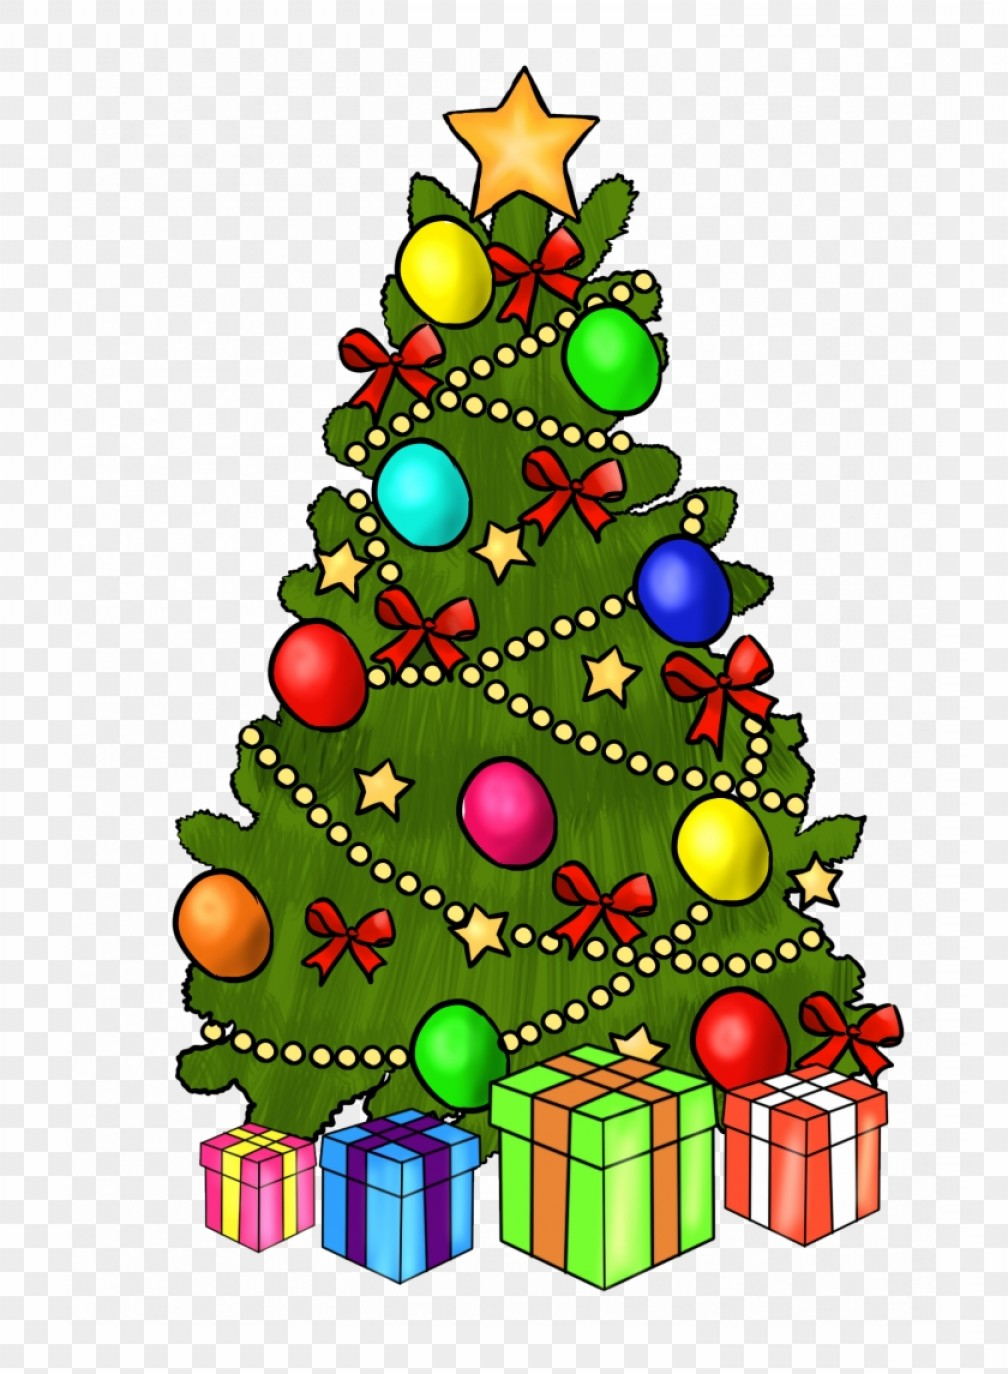 Christmas Tree Art Large Vector Format: Miggzmkichristmas Merry Christmas And Happy New Year Clipart Christmas Tree Clip